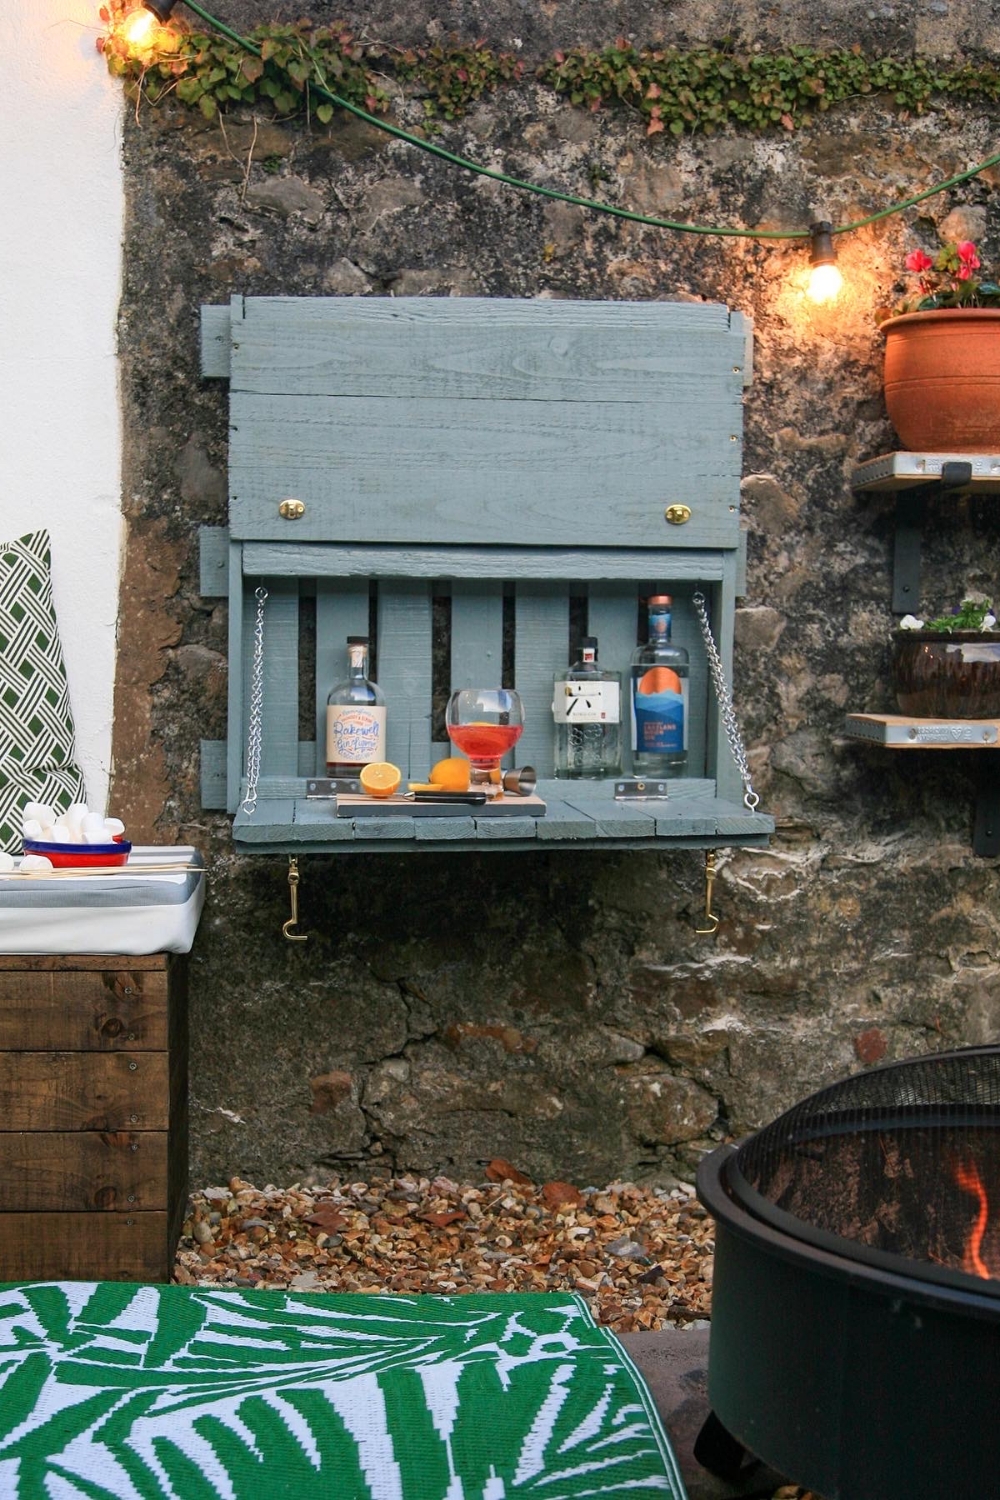 A drop leaf bar made from pallet wood showing three bottles of gin with lemon slices.  Painted in Wickes Dusky Pine Exterior Paint.  There is a fire pit in the foreground